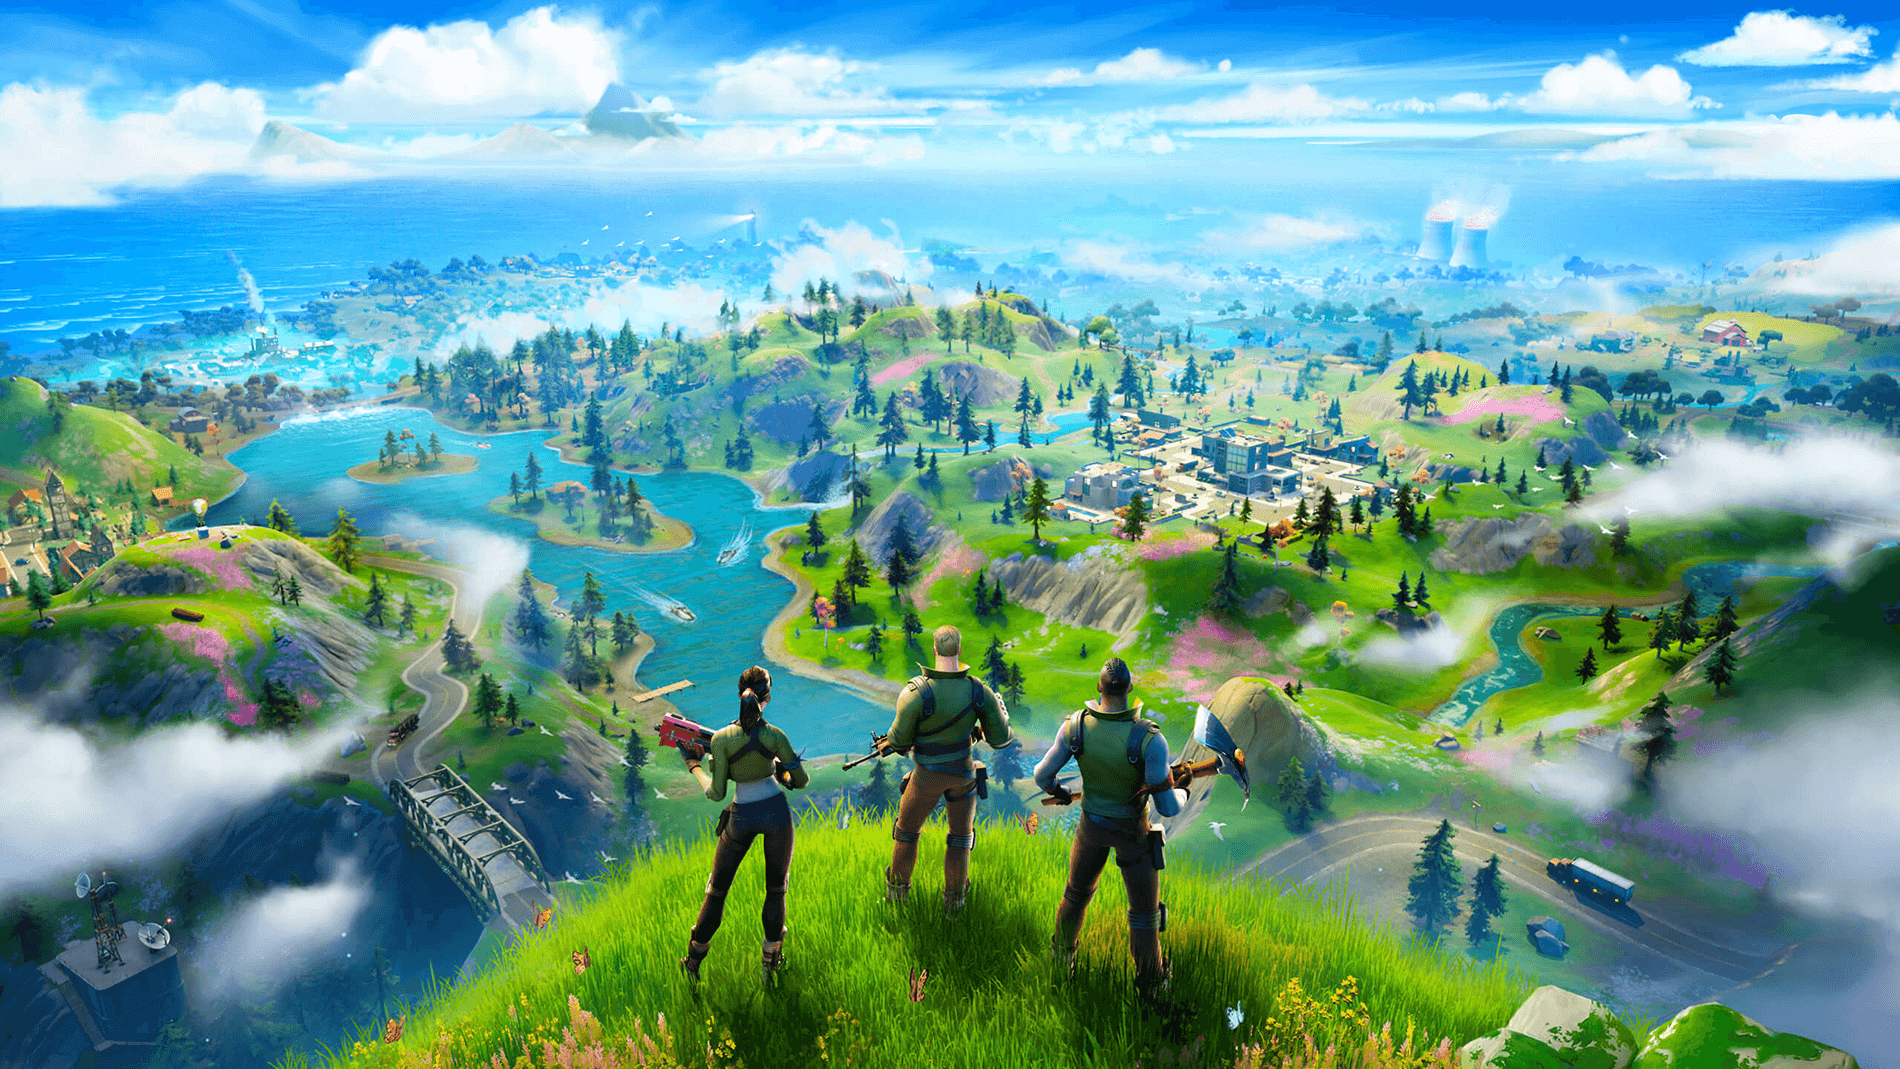 Fortnite chapter 2 new world